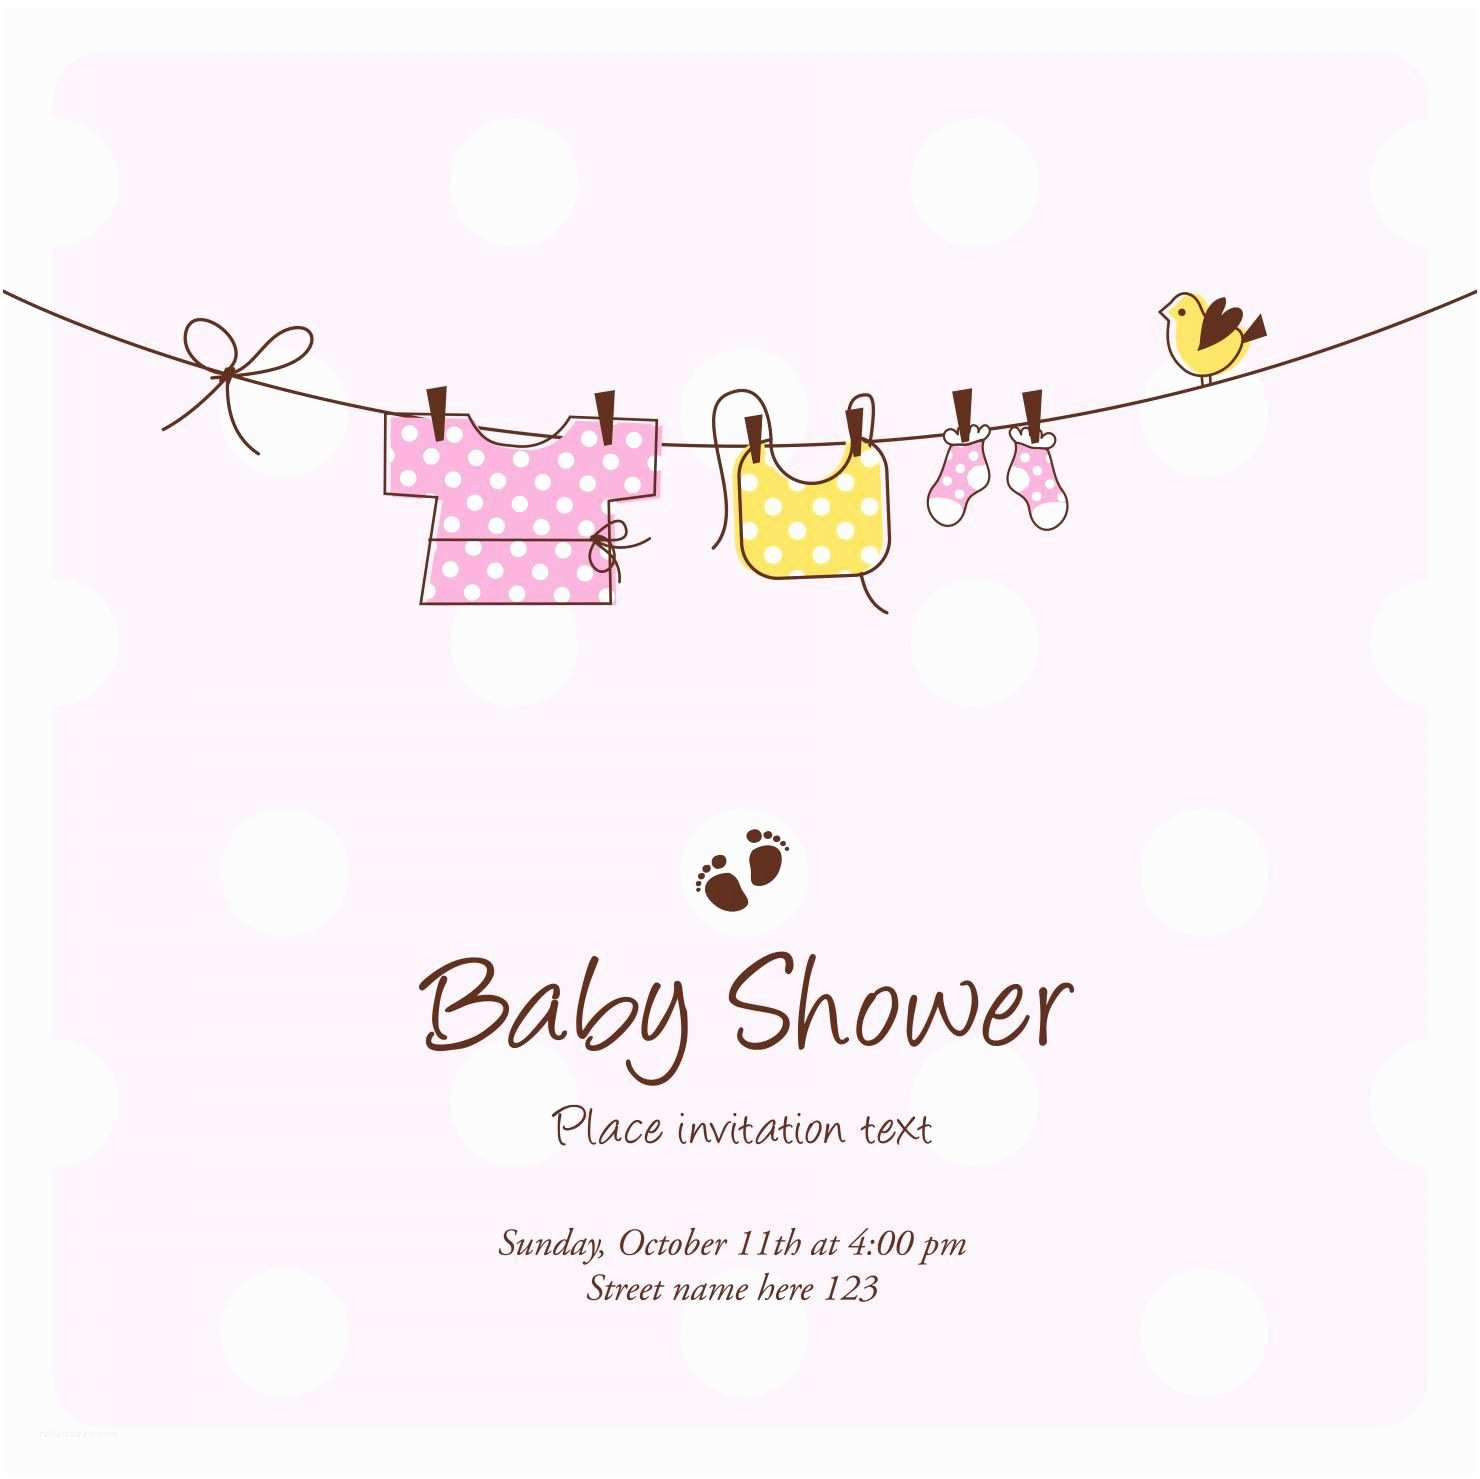 Baby Shower Invitation Cards Baby Shower Invitations Baby Shower Invitations Cards